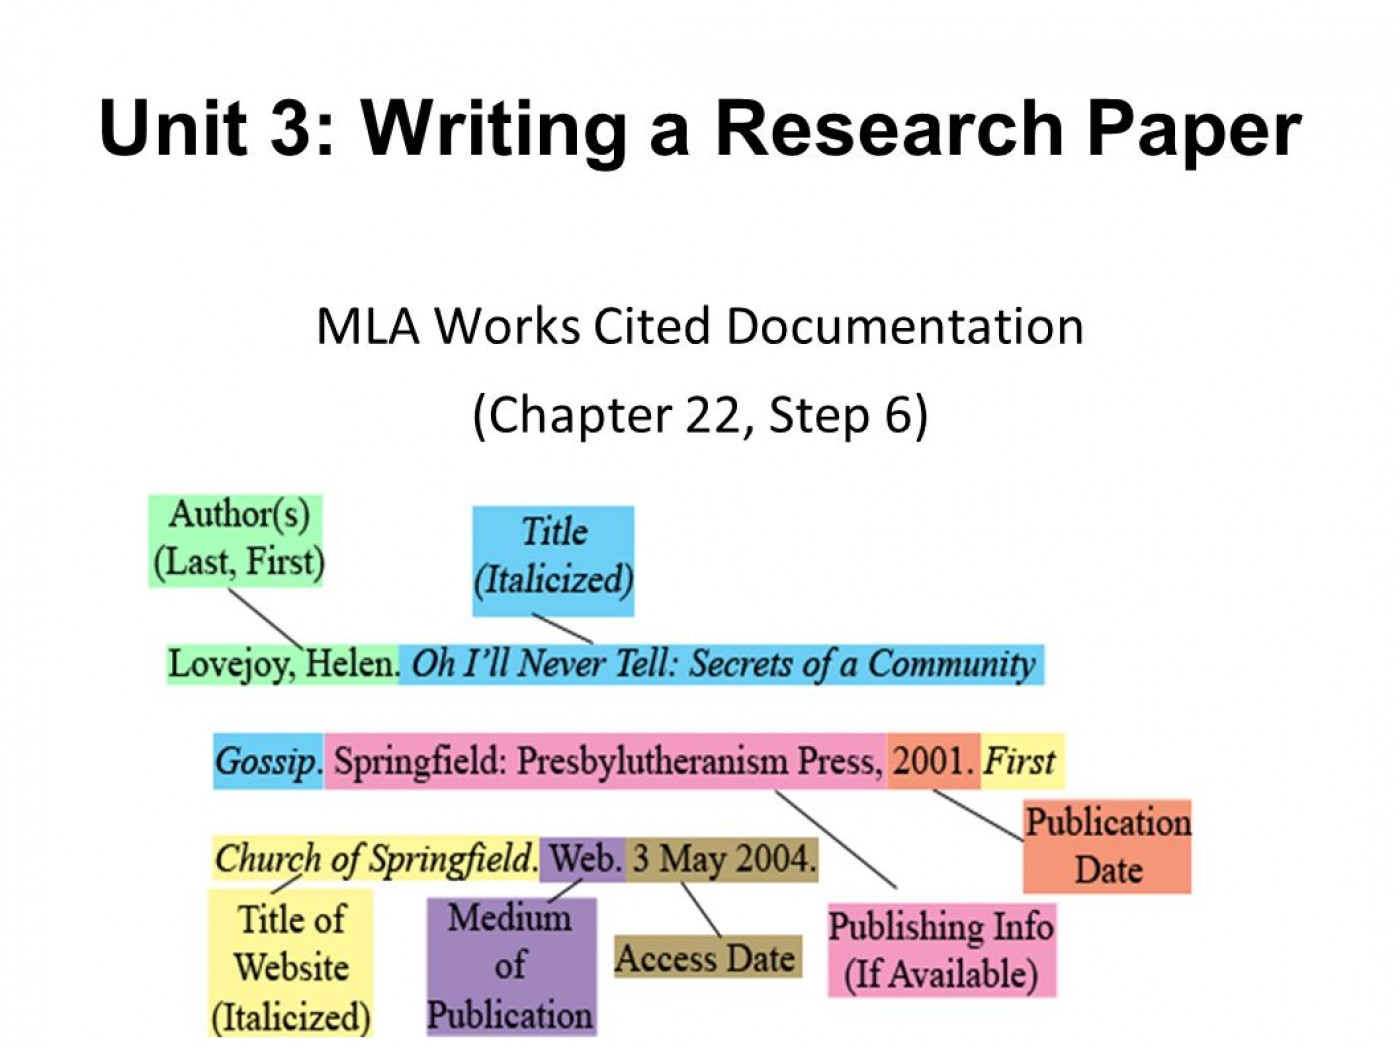 014 Citing Research Paper Mla Slide 1 Impressive A Works Cited How To Cite Website In Your 8 1400